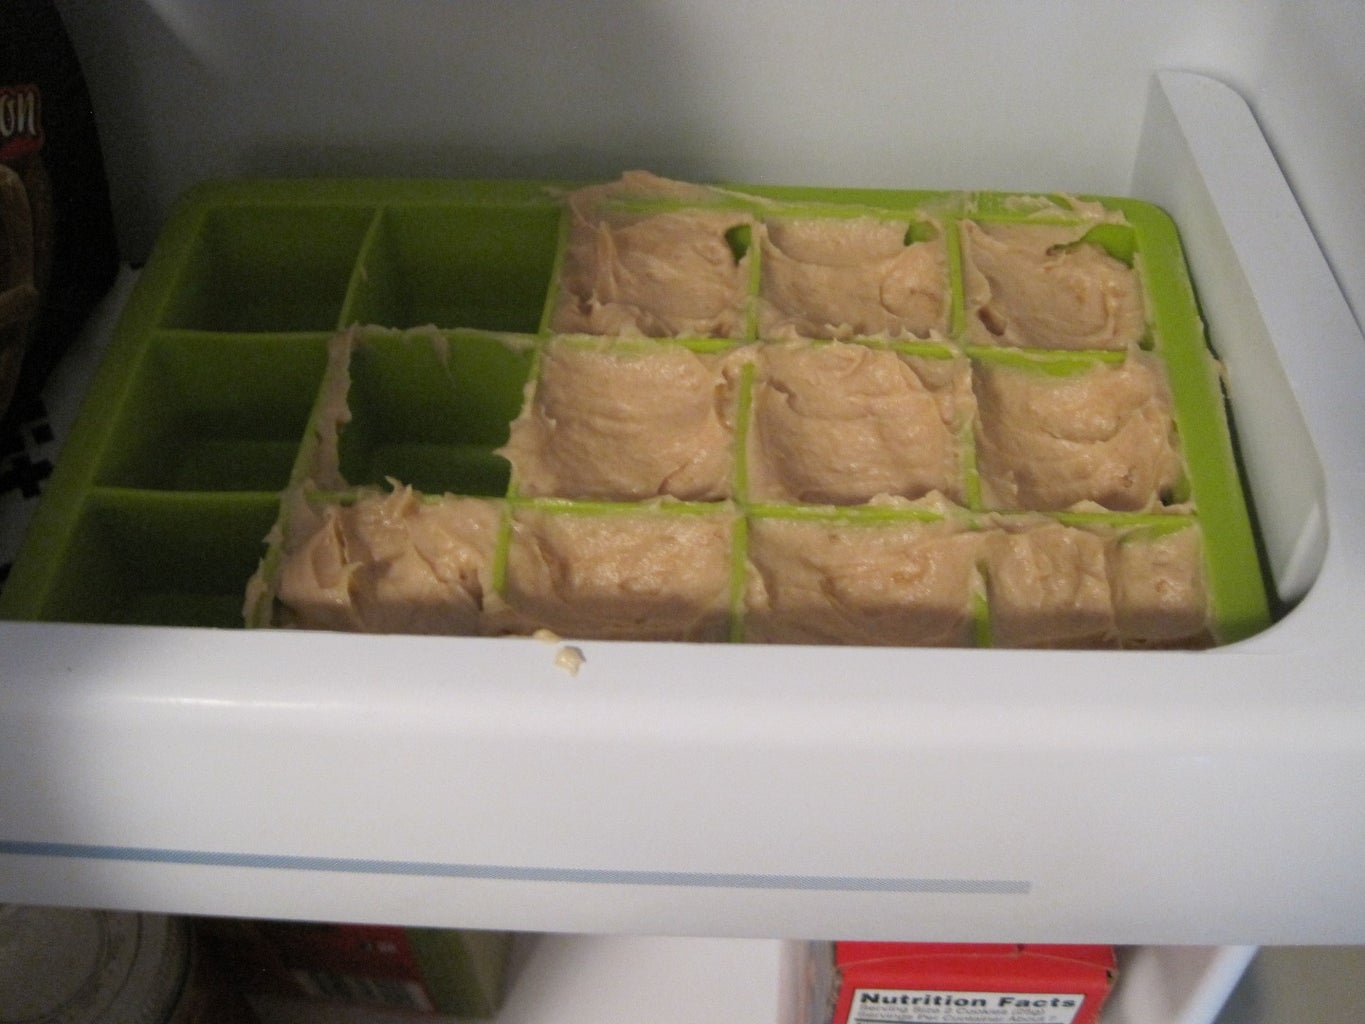 Pack Into Ice Trays and Freeze